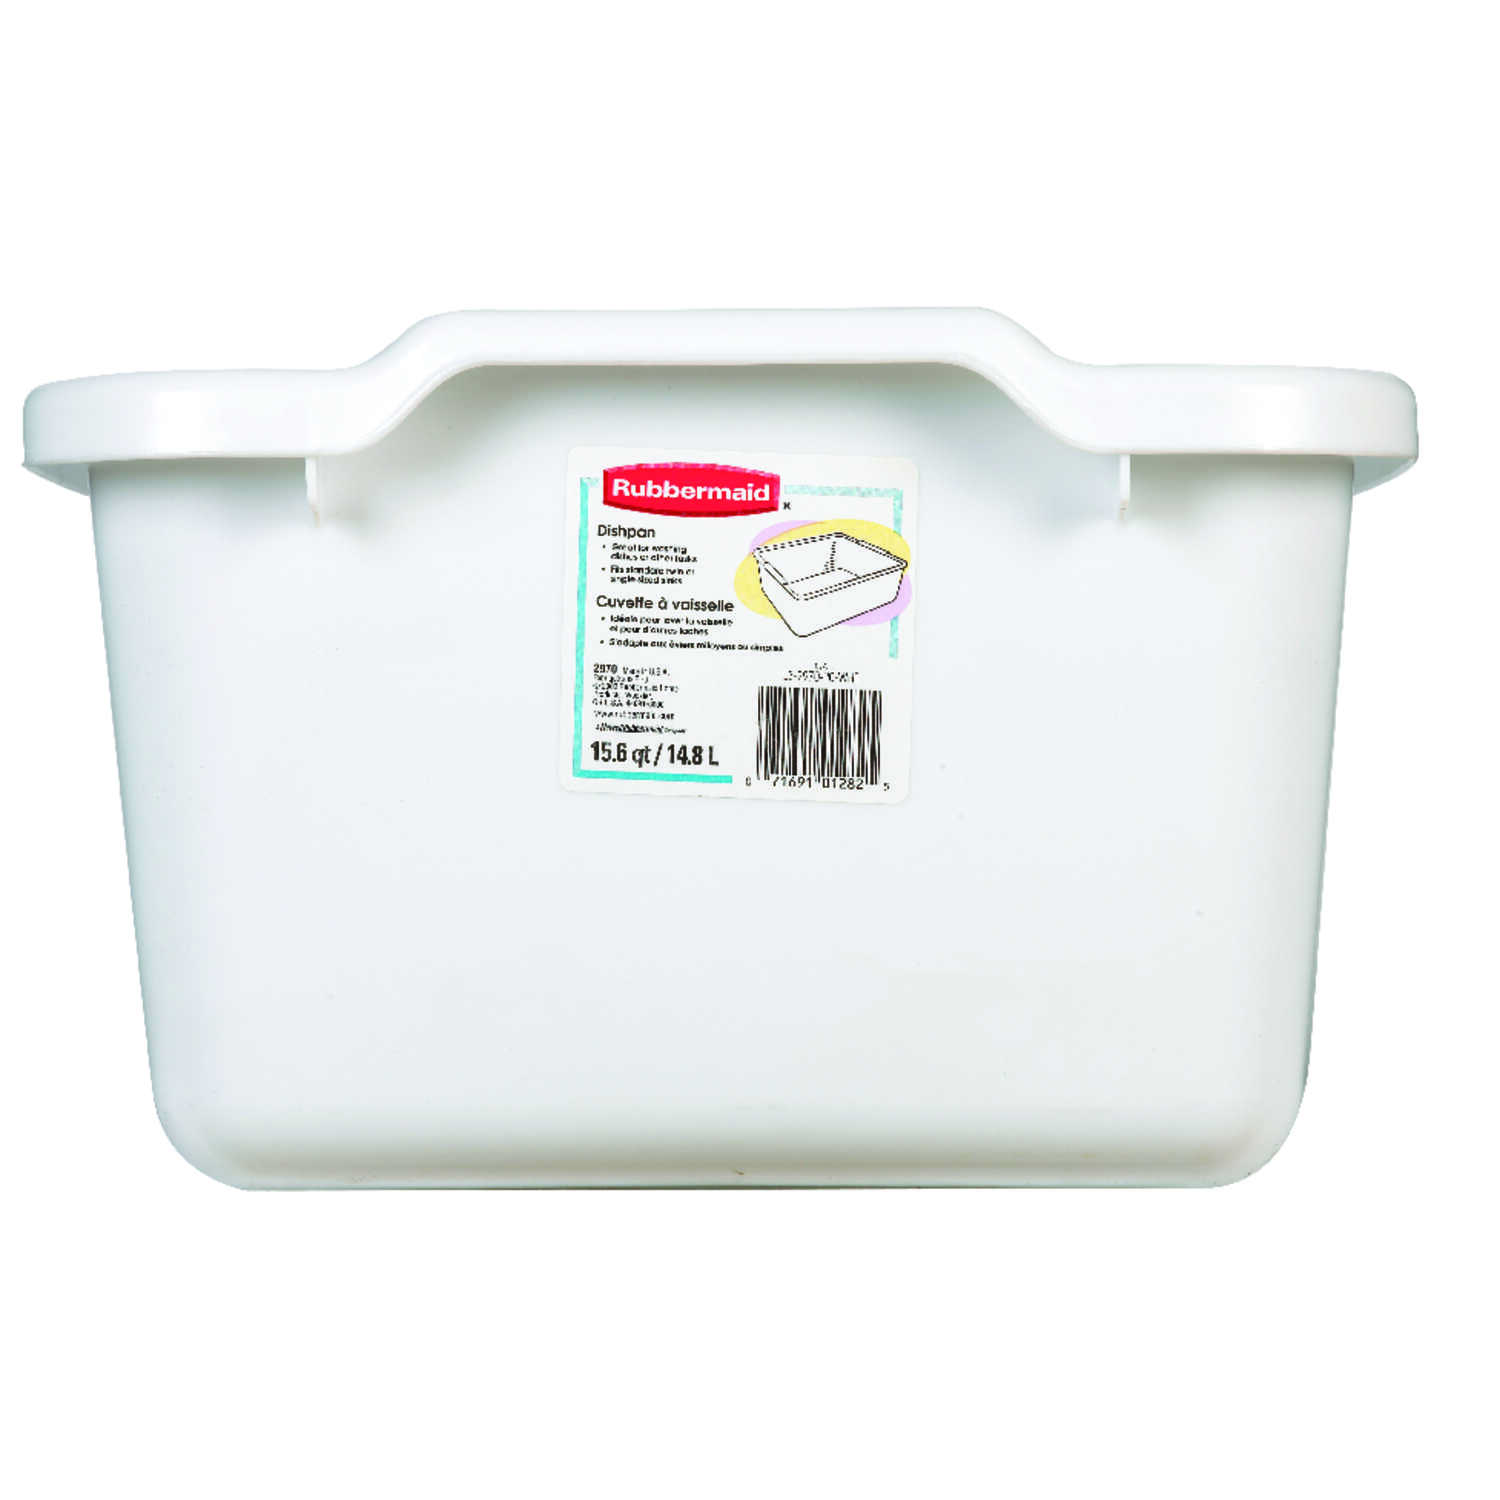 Rubbermaid  7-3/4 in. H x 12-3/4 in. W x 15-1/2 in. L Plastic  Dish Pan  White